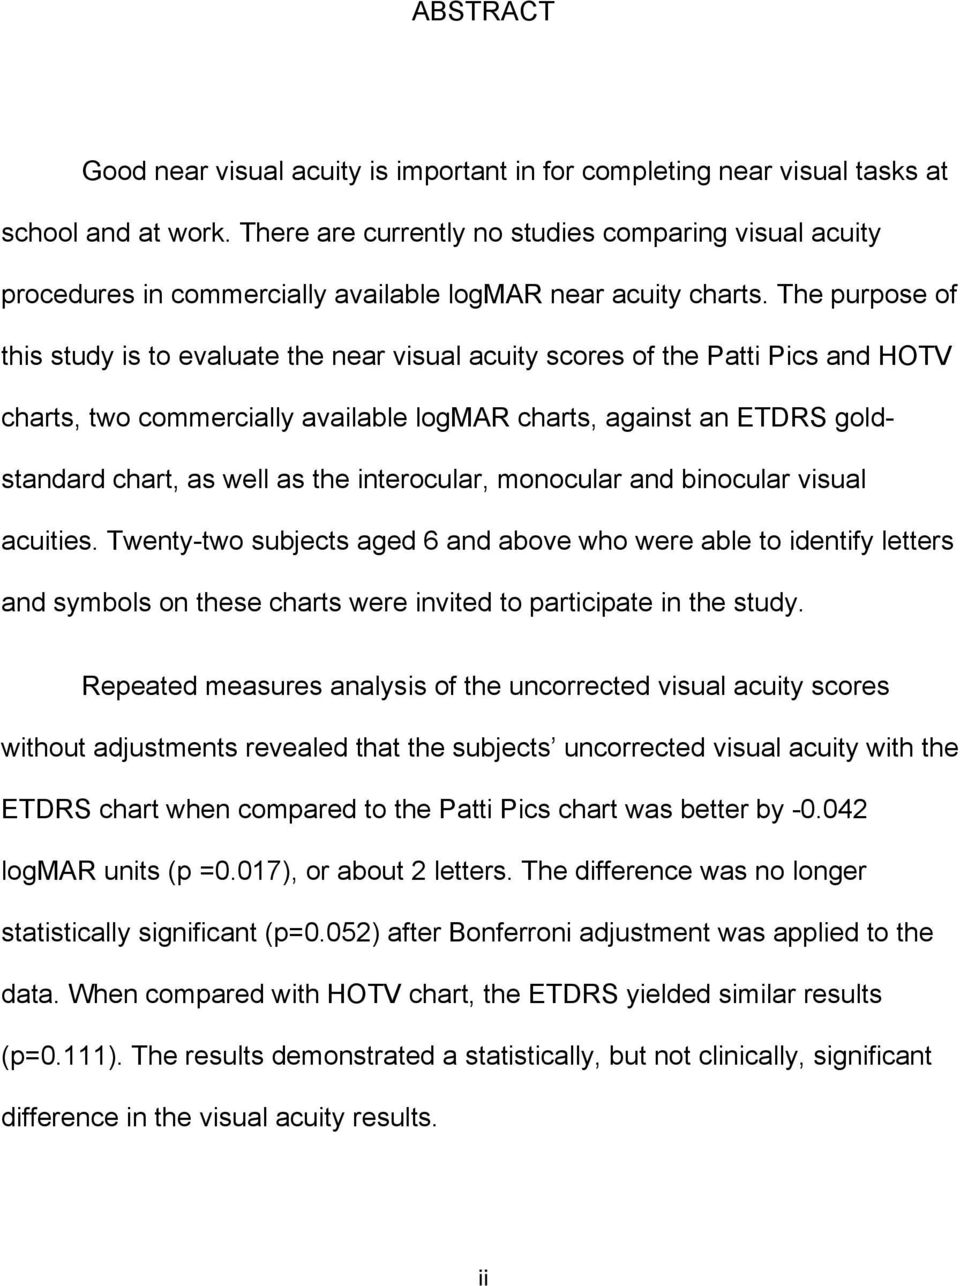 STUDY OF NEAR VISUAL ACUITY PROCEDURES  A Thesis  Presented